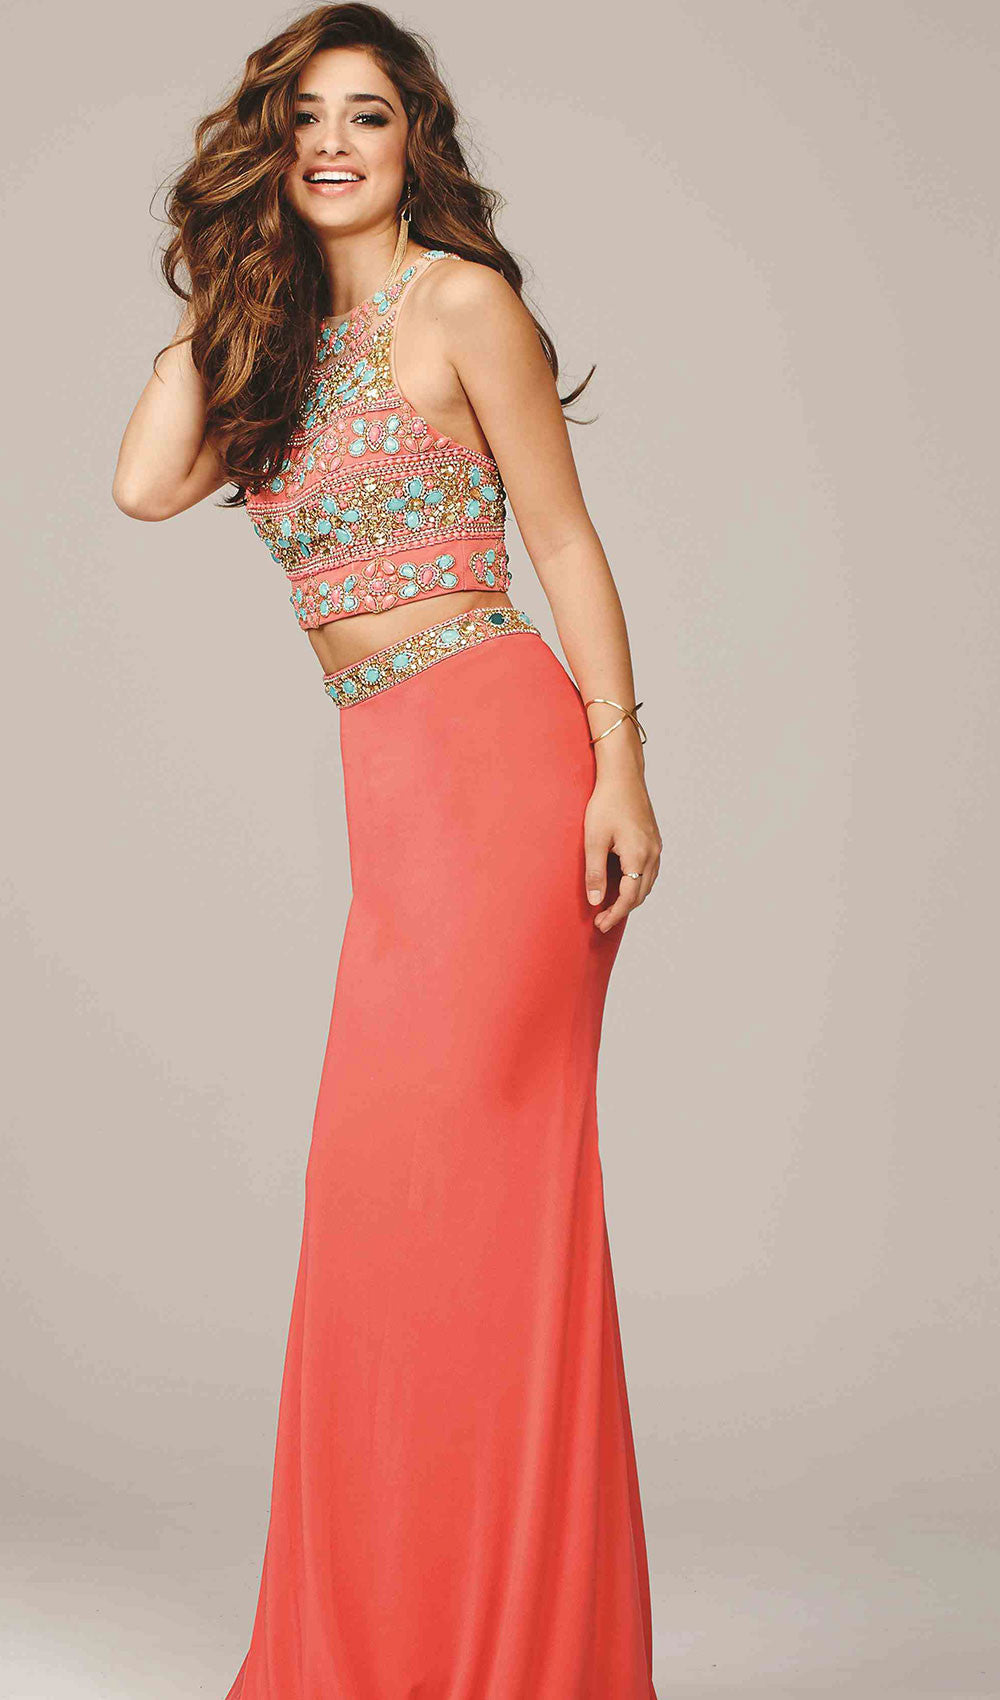 Two Piece Jersey | Jovani - STYLE 39350